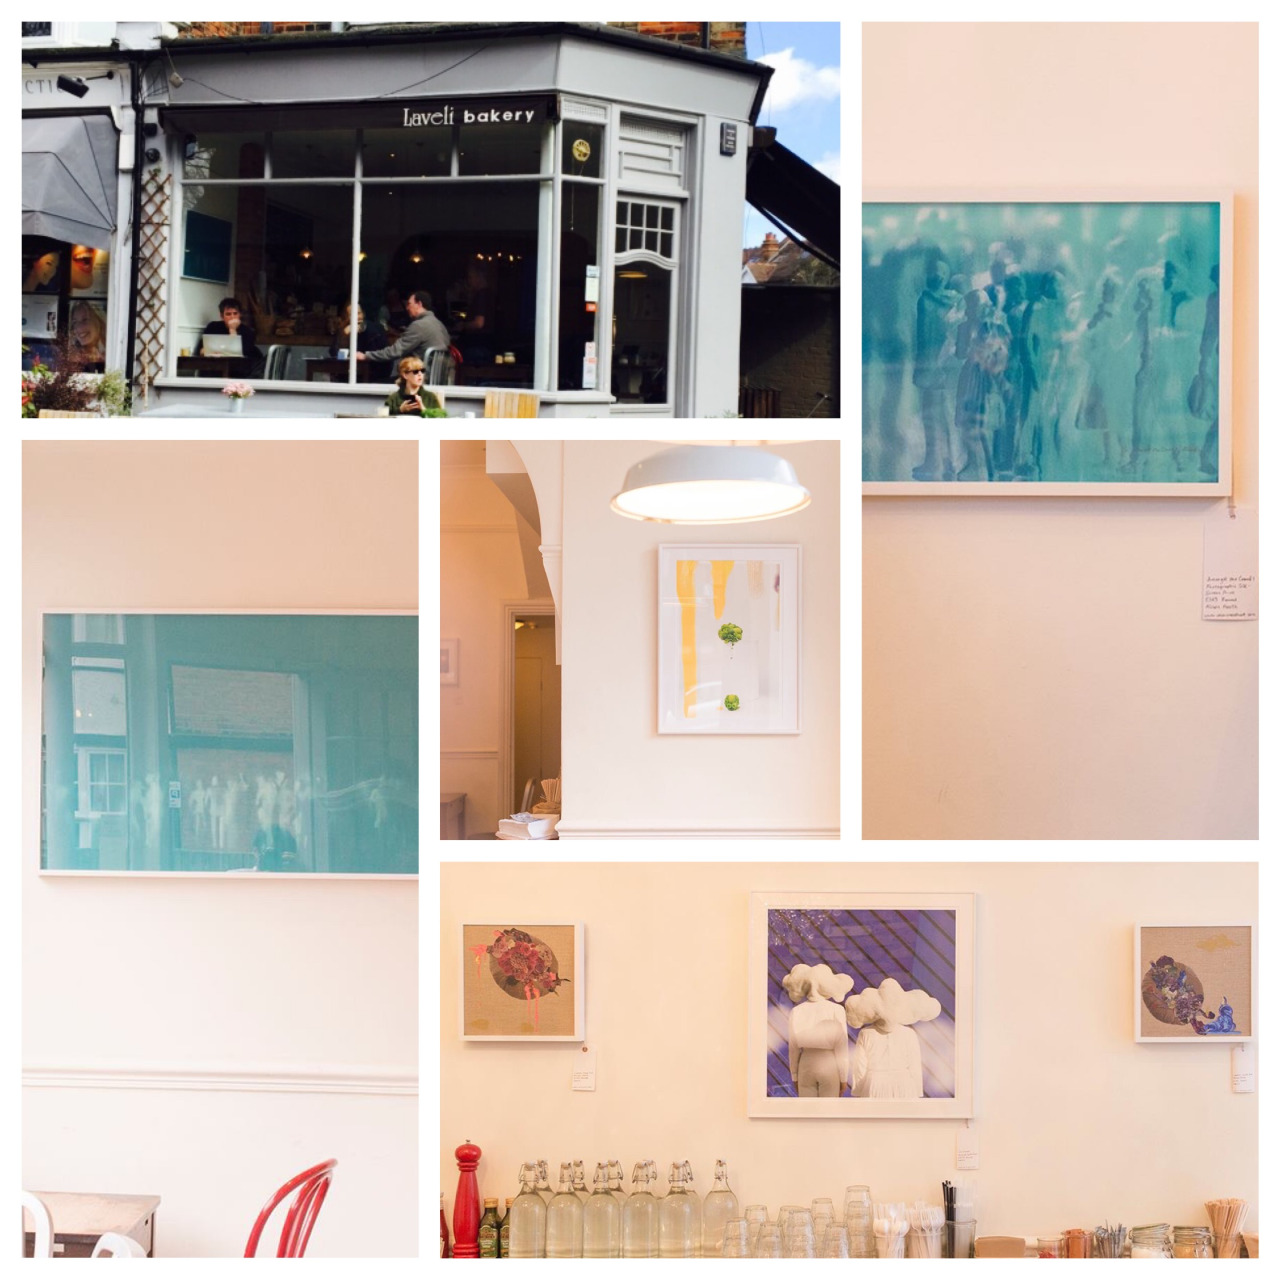 I am currently exhibiting my work at the lovely 'Laveli' Bakery in Chiswick, London. The In-between exhibition with Artist Mayu will run through to the end of April and I will then continue a solo exhibition of works until June. Works will continually change so please make sure and revisit! The café area provides a wonderful space to exhibit my prints and photographs and I hope everyone enjoys seeing them as they relax in the space. If you are not a regular visitor to the bakery please take this opportunity to come along and see the work! Address: 61 South Parade, W4 5LG Nearest Station: Turnham Green or Chiswick Park Times: Monday – Saturday 7:00am – 7:00pm / Sunday 8:00am – 6:30pm